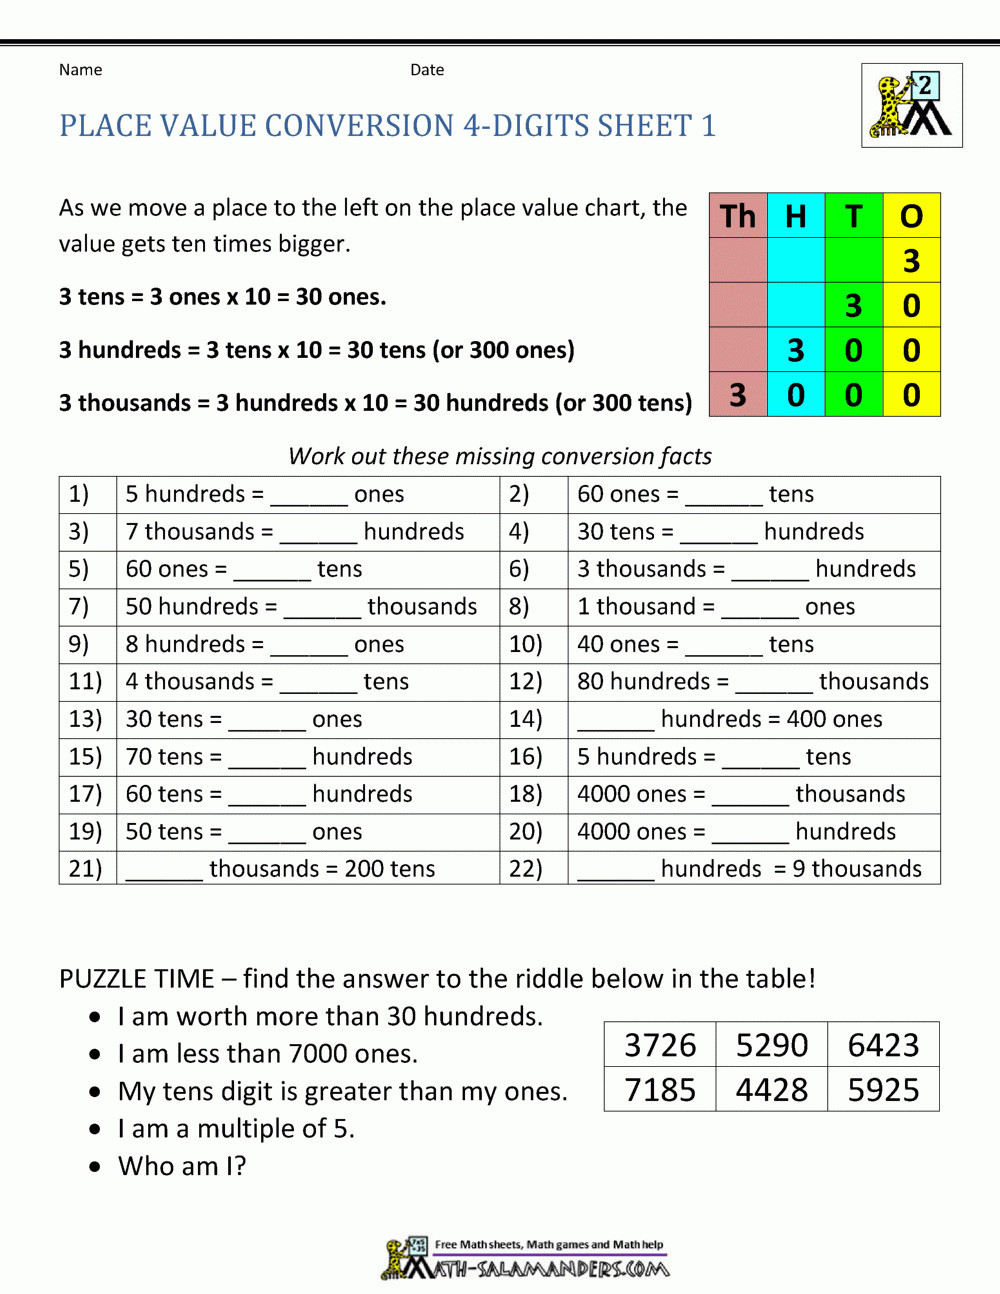 Place Value Worksheet 3rd Grade 3 Free Math Worksheets Third Grade 3 Place Value and